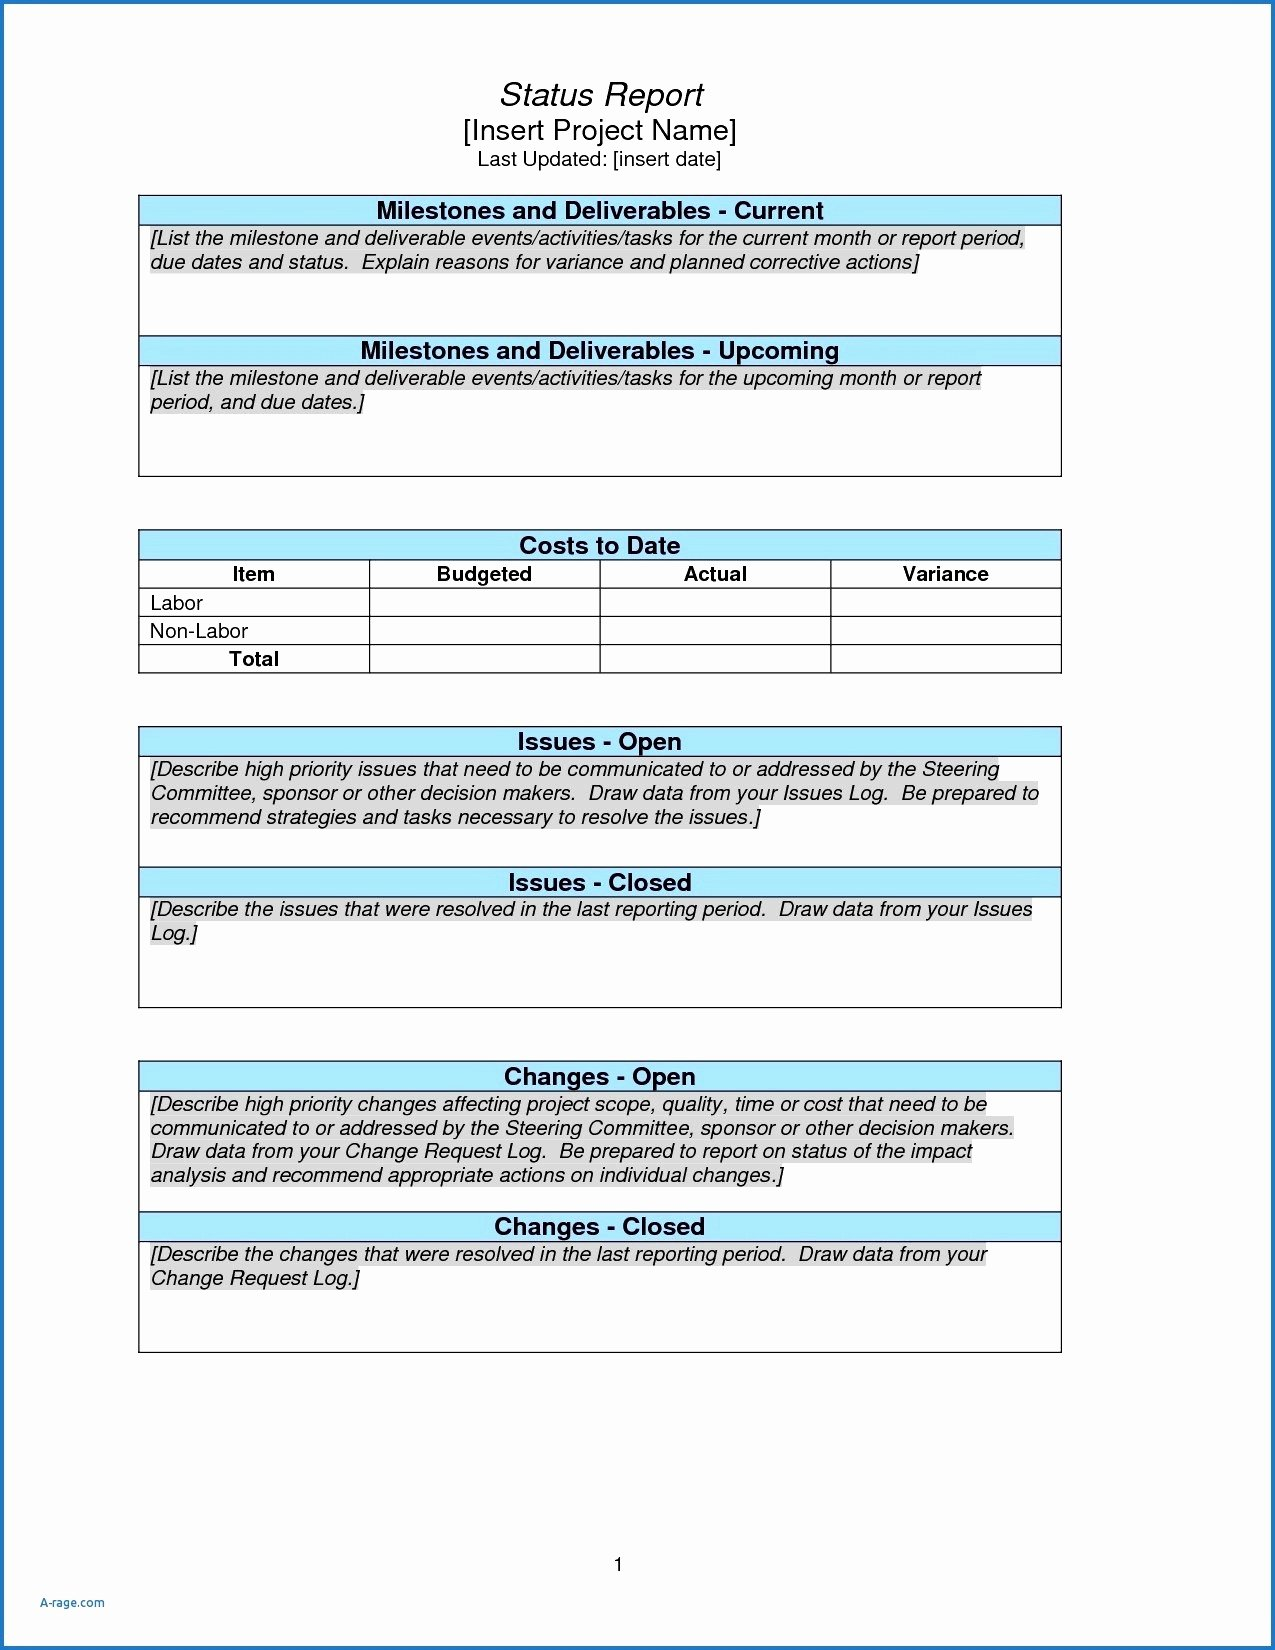 Contract Management Template Excel Beautiful Contract Management Template Excel Elegant Contract Management In Excel Client Database Template